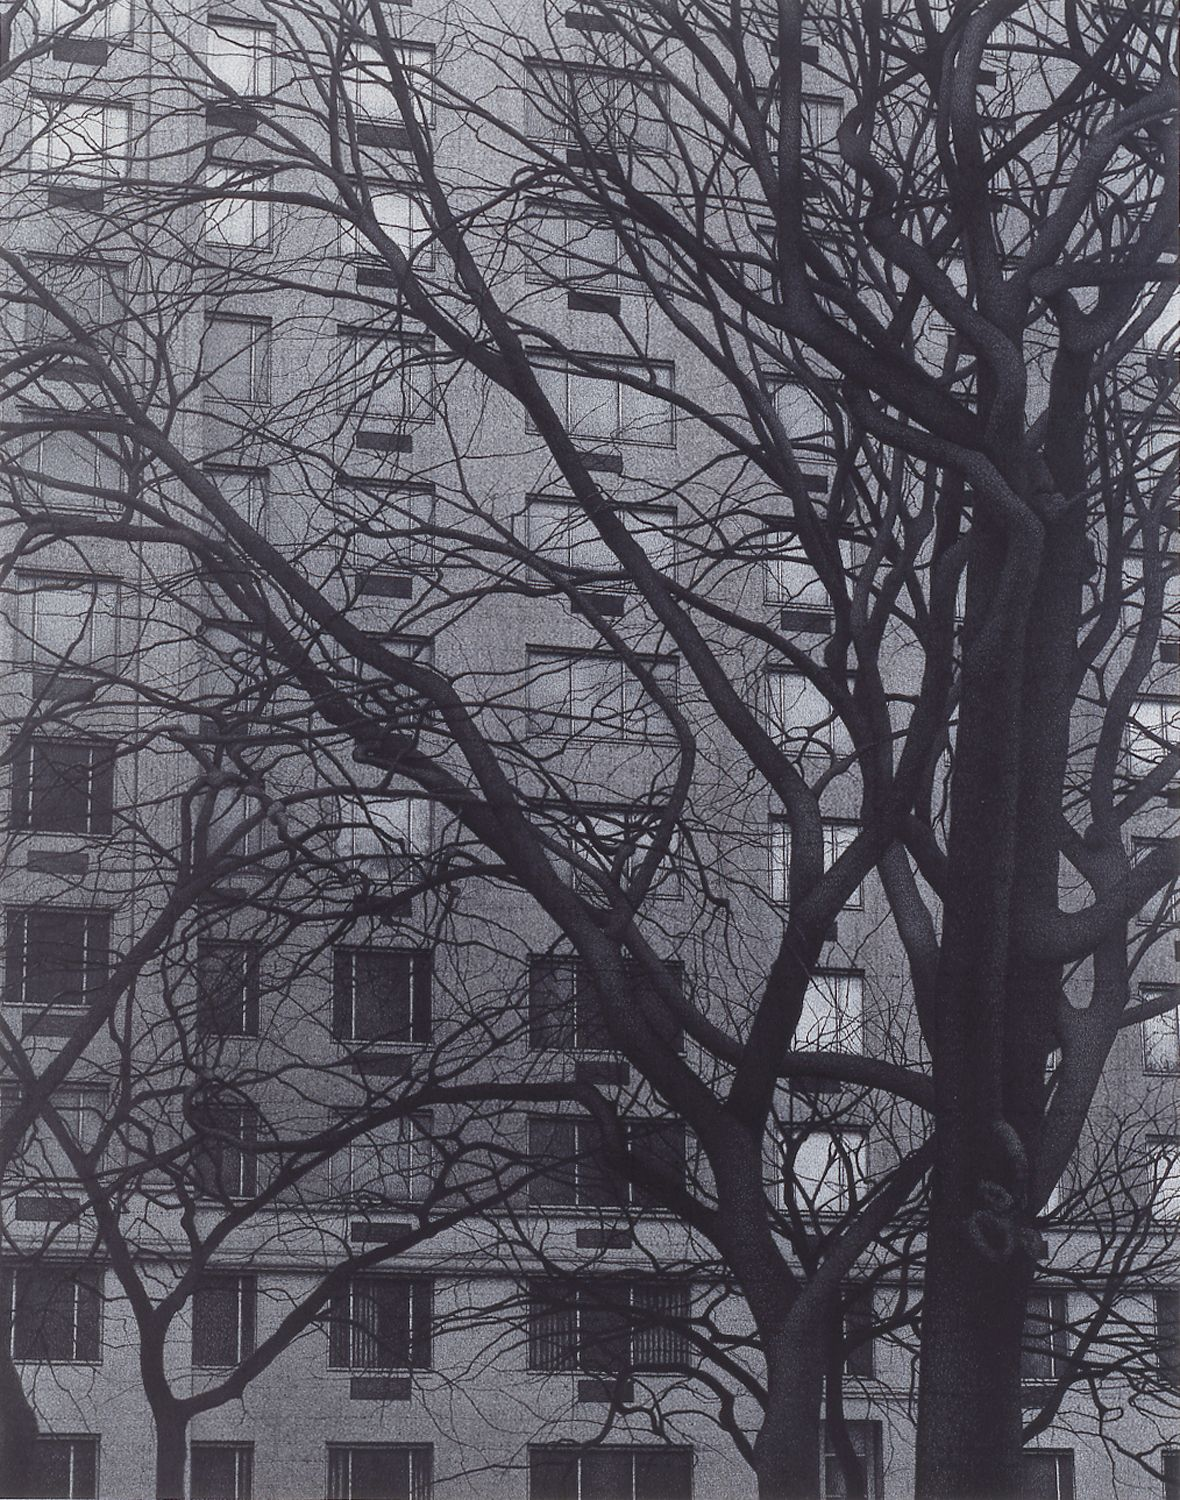 Anthony Mitri Central Park at Fifth Ave, NY, NY, 2006, charcoal on paper, 21 3/4 x 17 inches, Private Collection